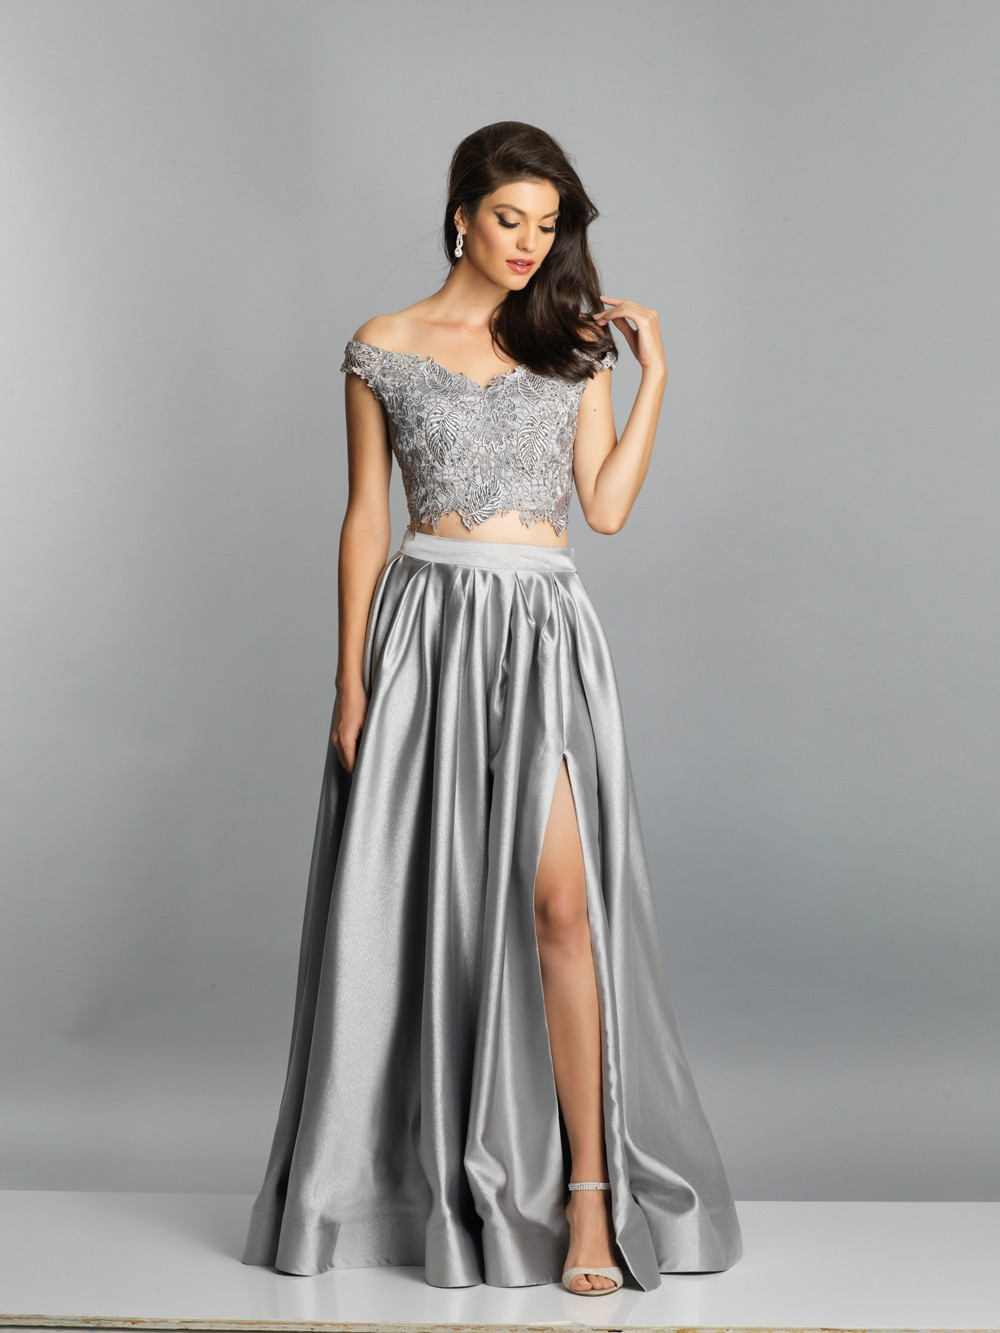 a15ef9f0779e ... Dave and Johnny A7796 Slit Skirt Two Piece Prom Dress